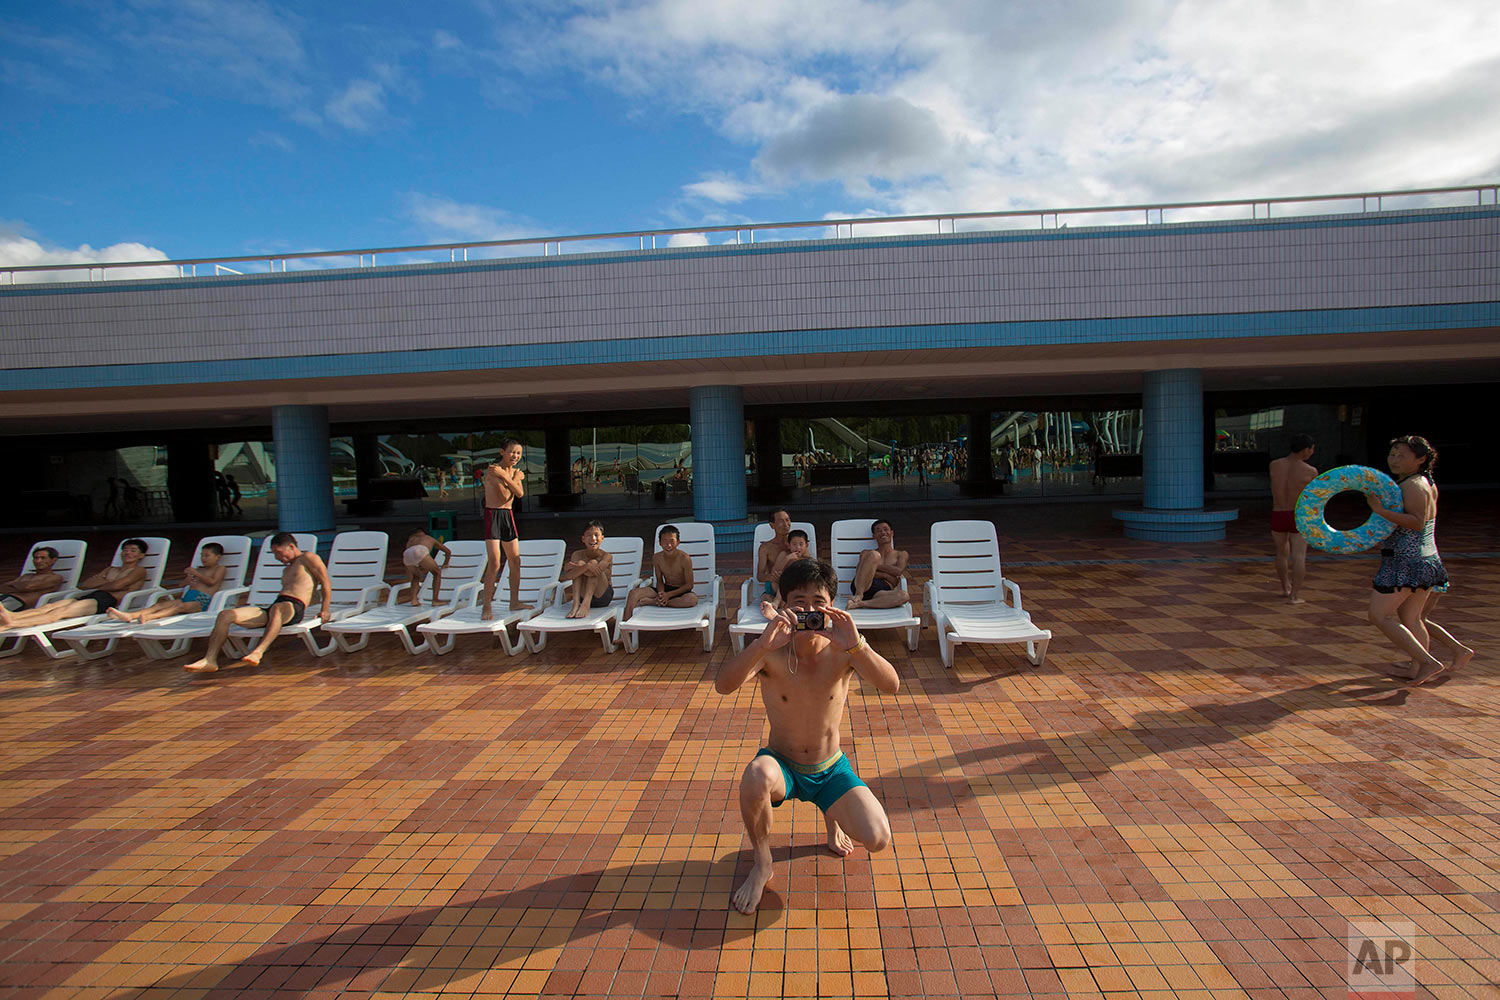 A man takes a photograph while his friends rest on deck chairs at a water slide and swimming pool complex in Pyongyang, North Korea, on Sept. 8, 2012. (AP Photo/David Guttenfelder)